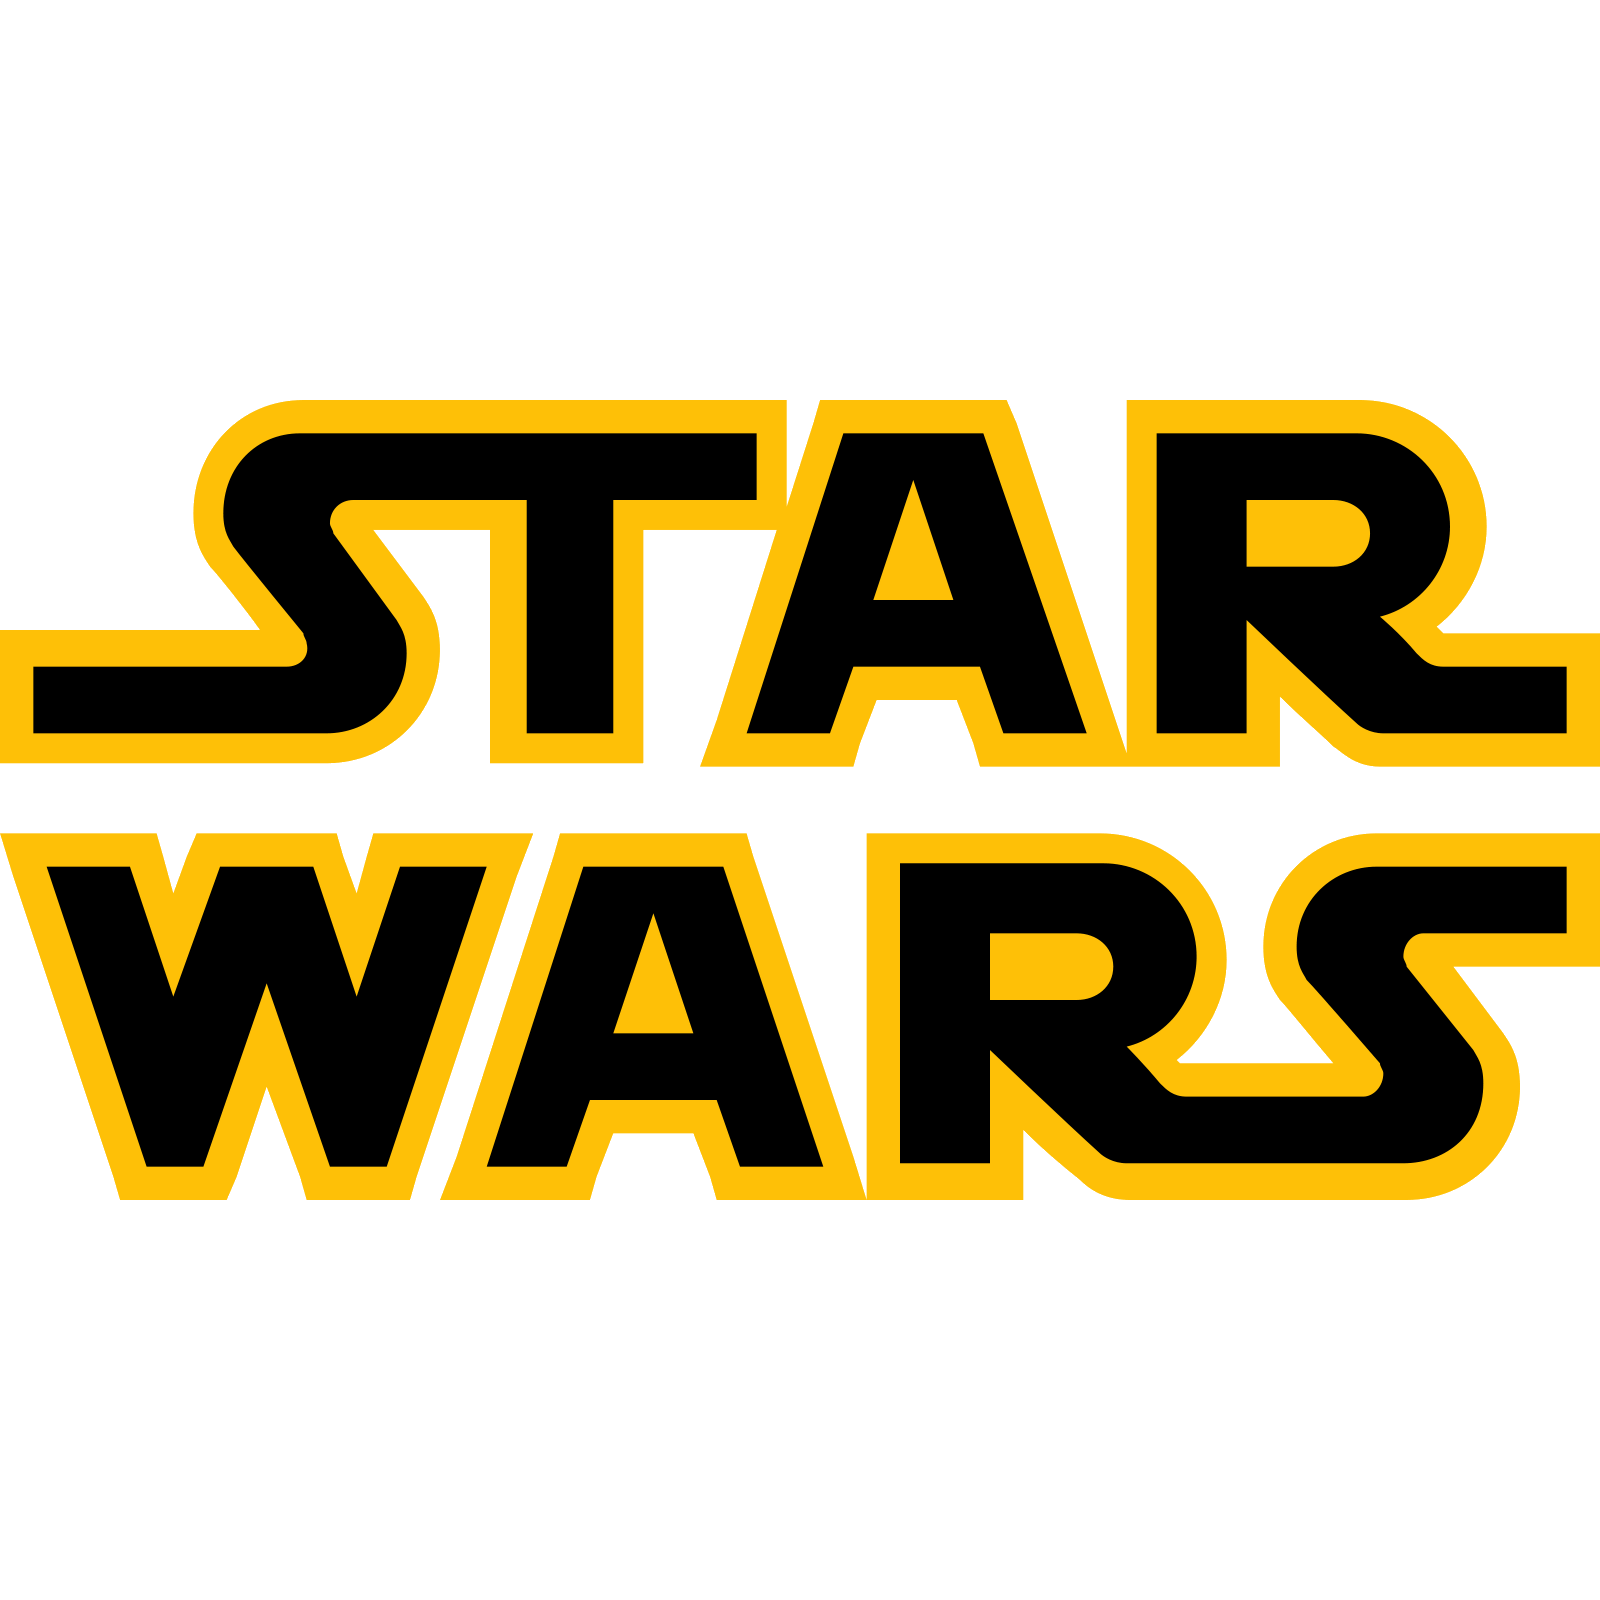 Star wars movie clipart picture library download Star Wars Icon - free download, PNG and vector picture library download